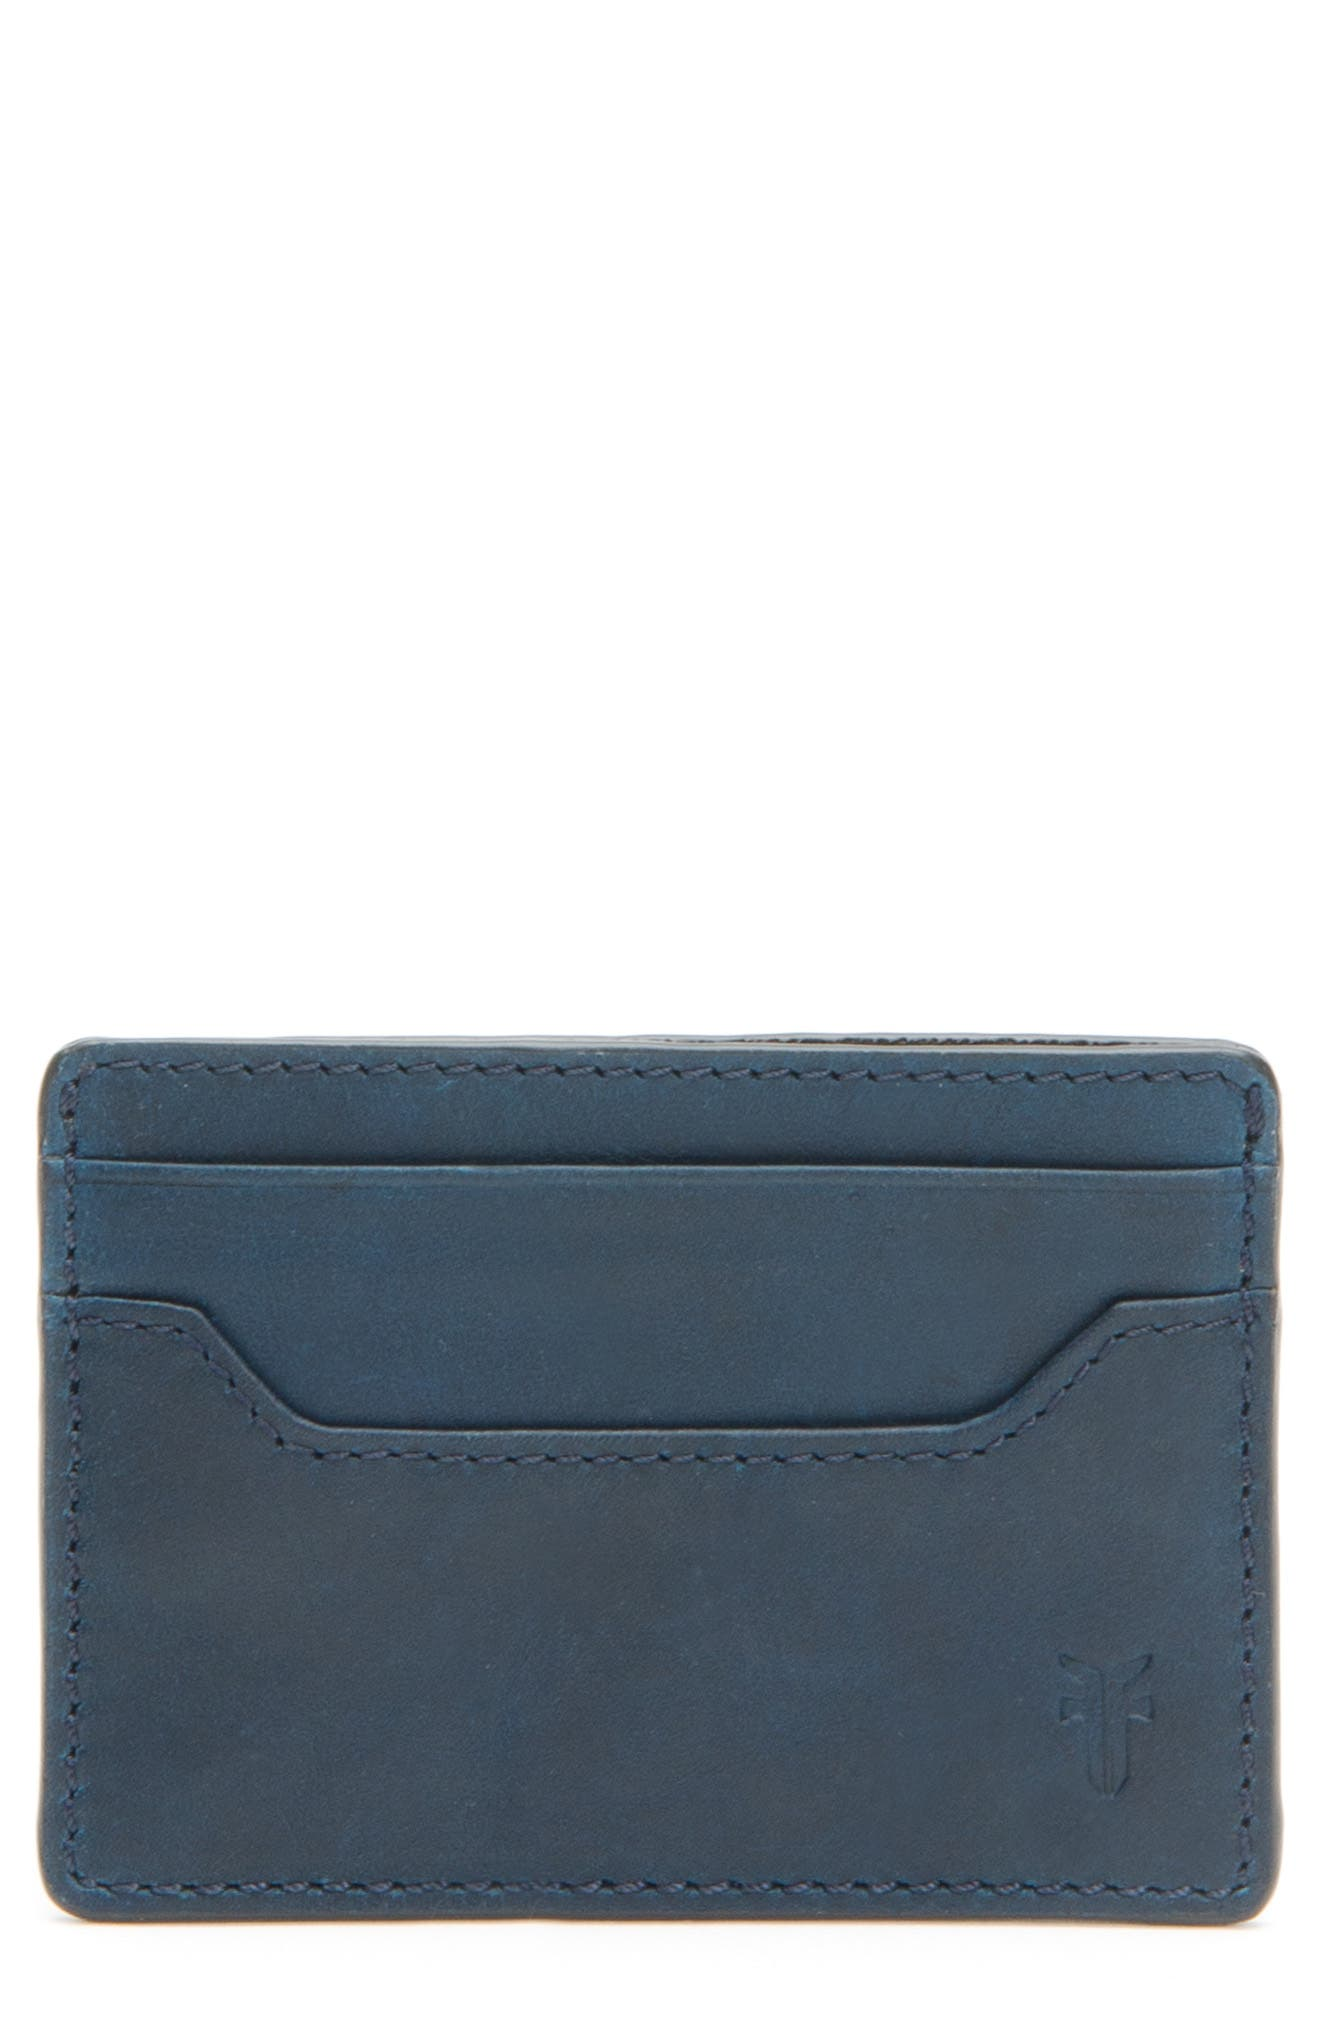 'Logan' Leather Card Holder,                             Main thumbnail 1, color,                             NAVY